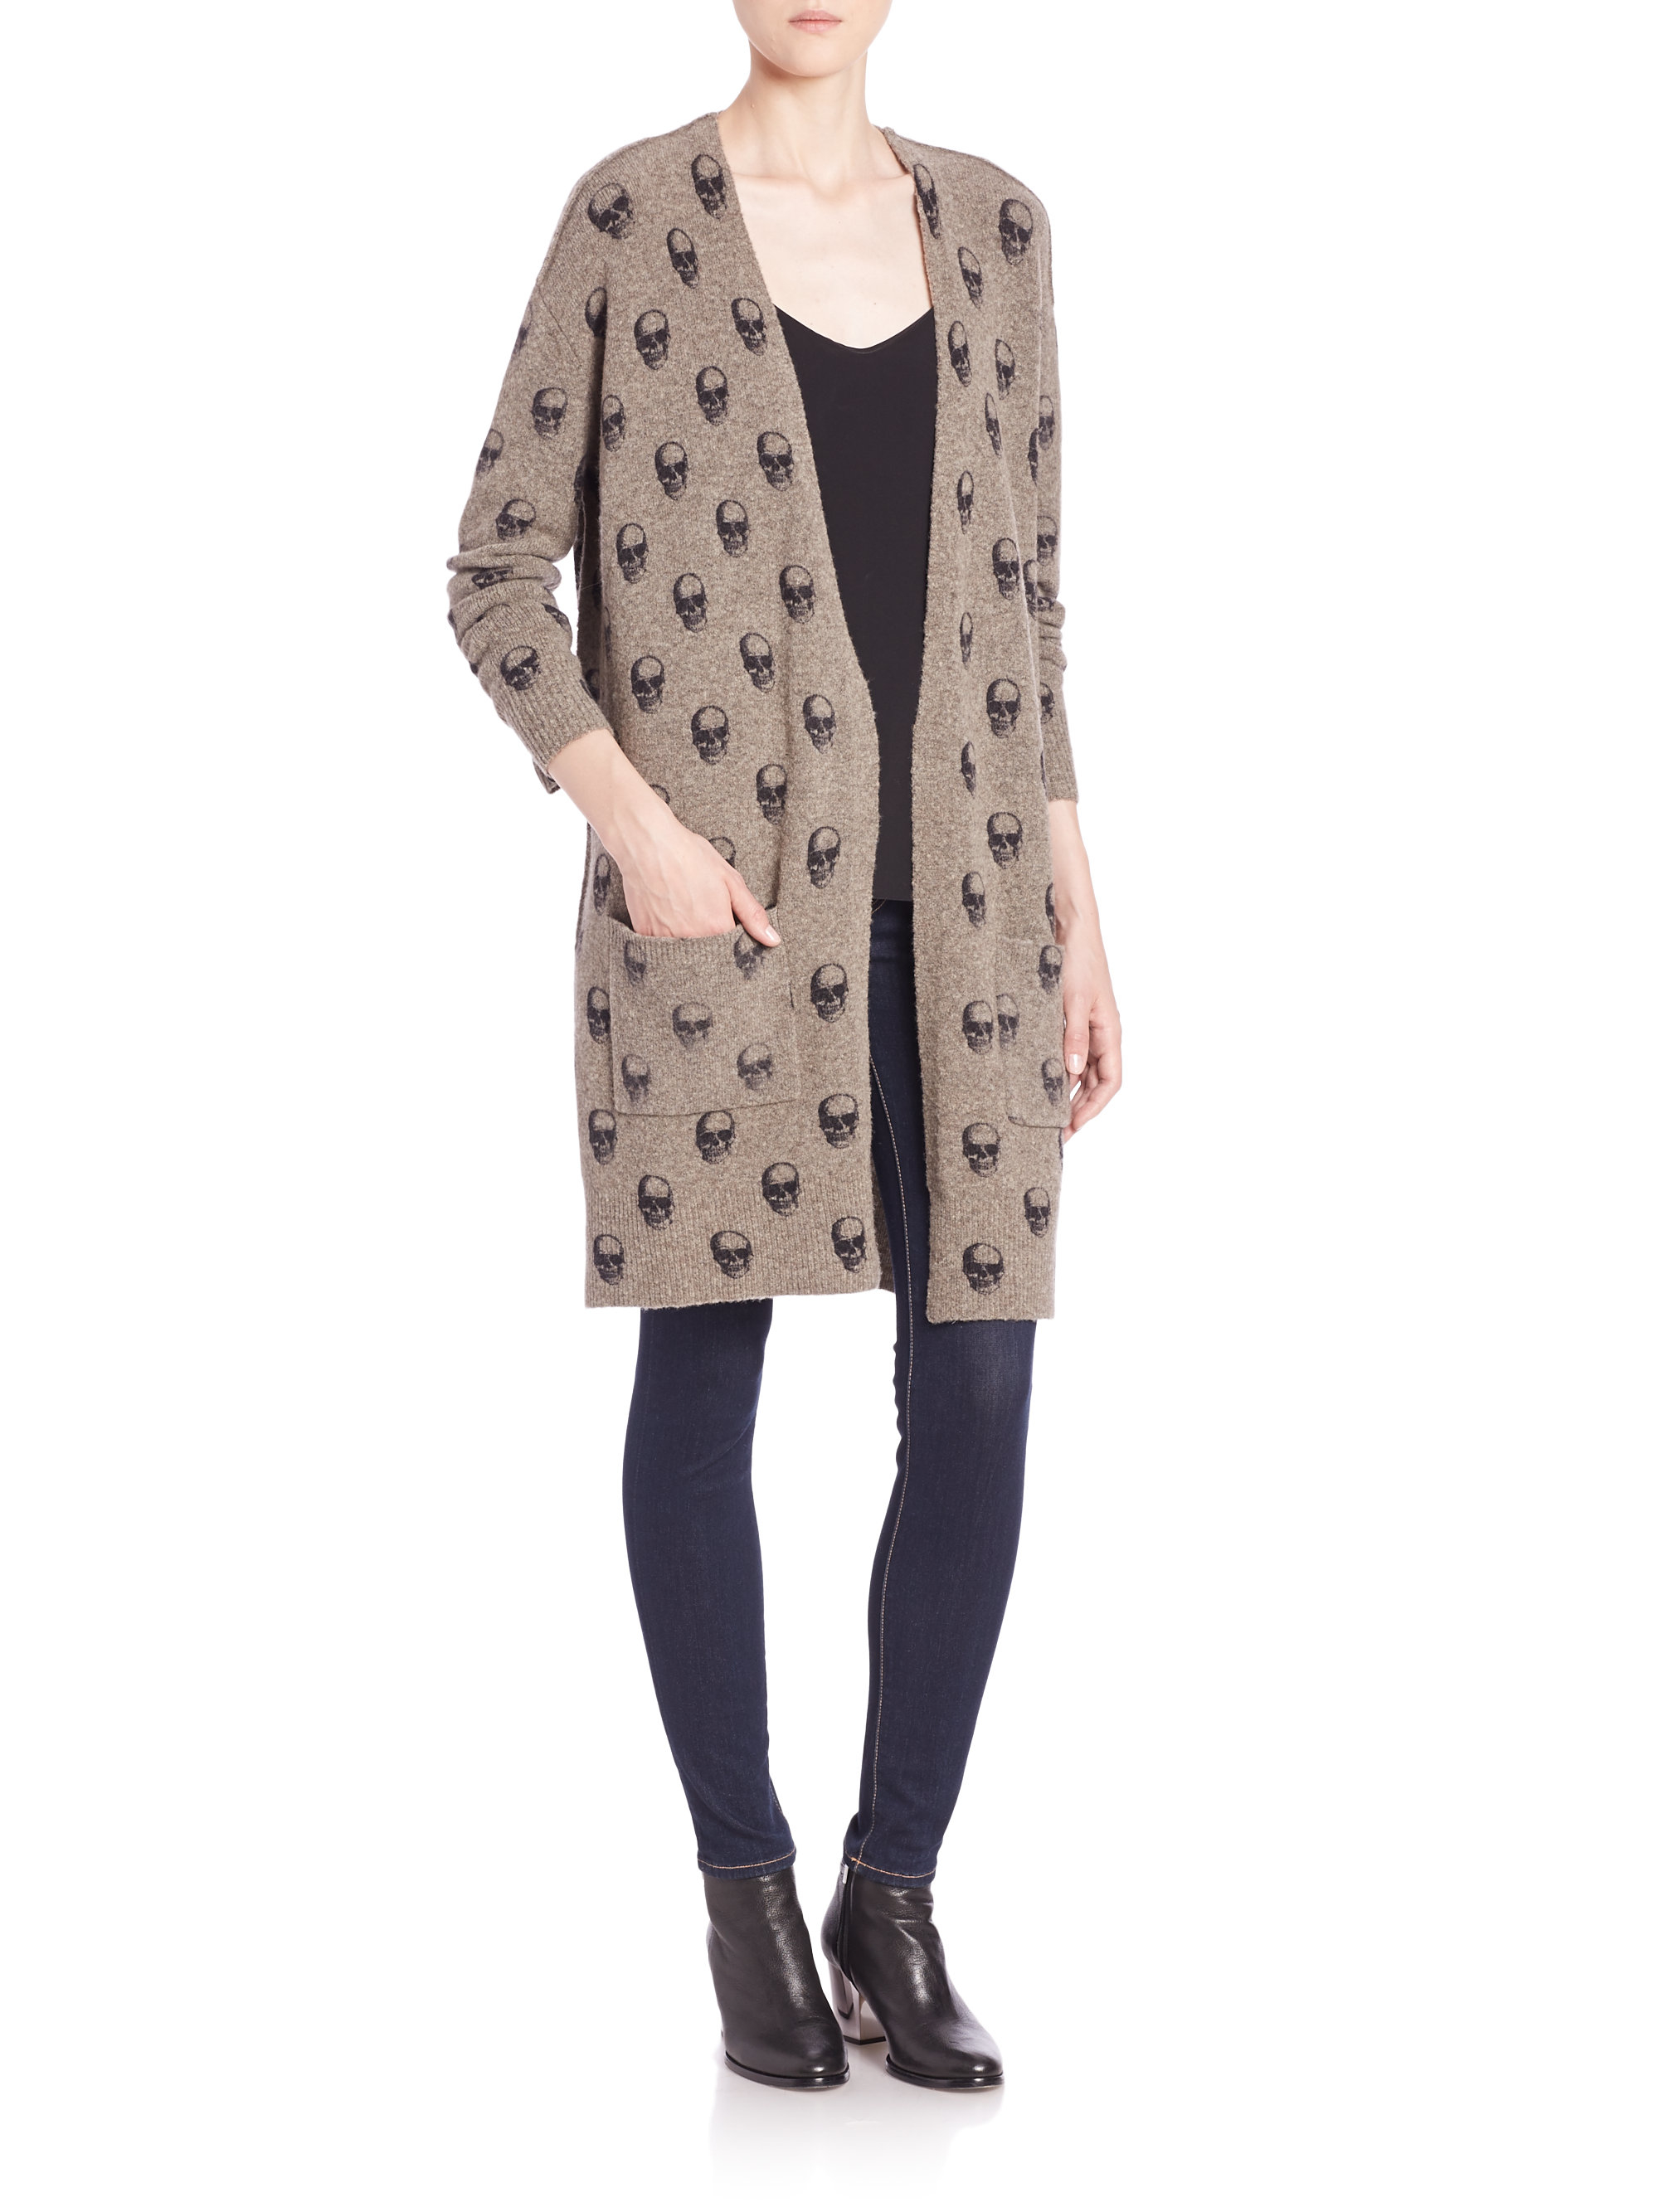 360cashmere Raven Skull-printed Long Cardigan in Black | Lyst